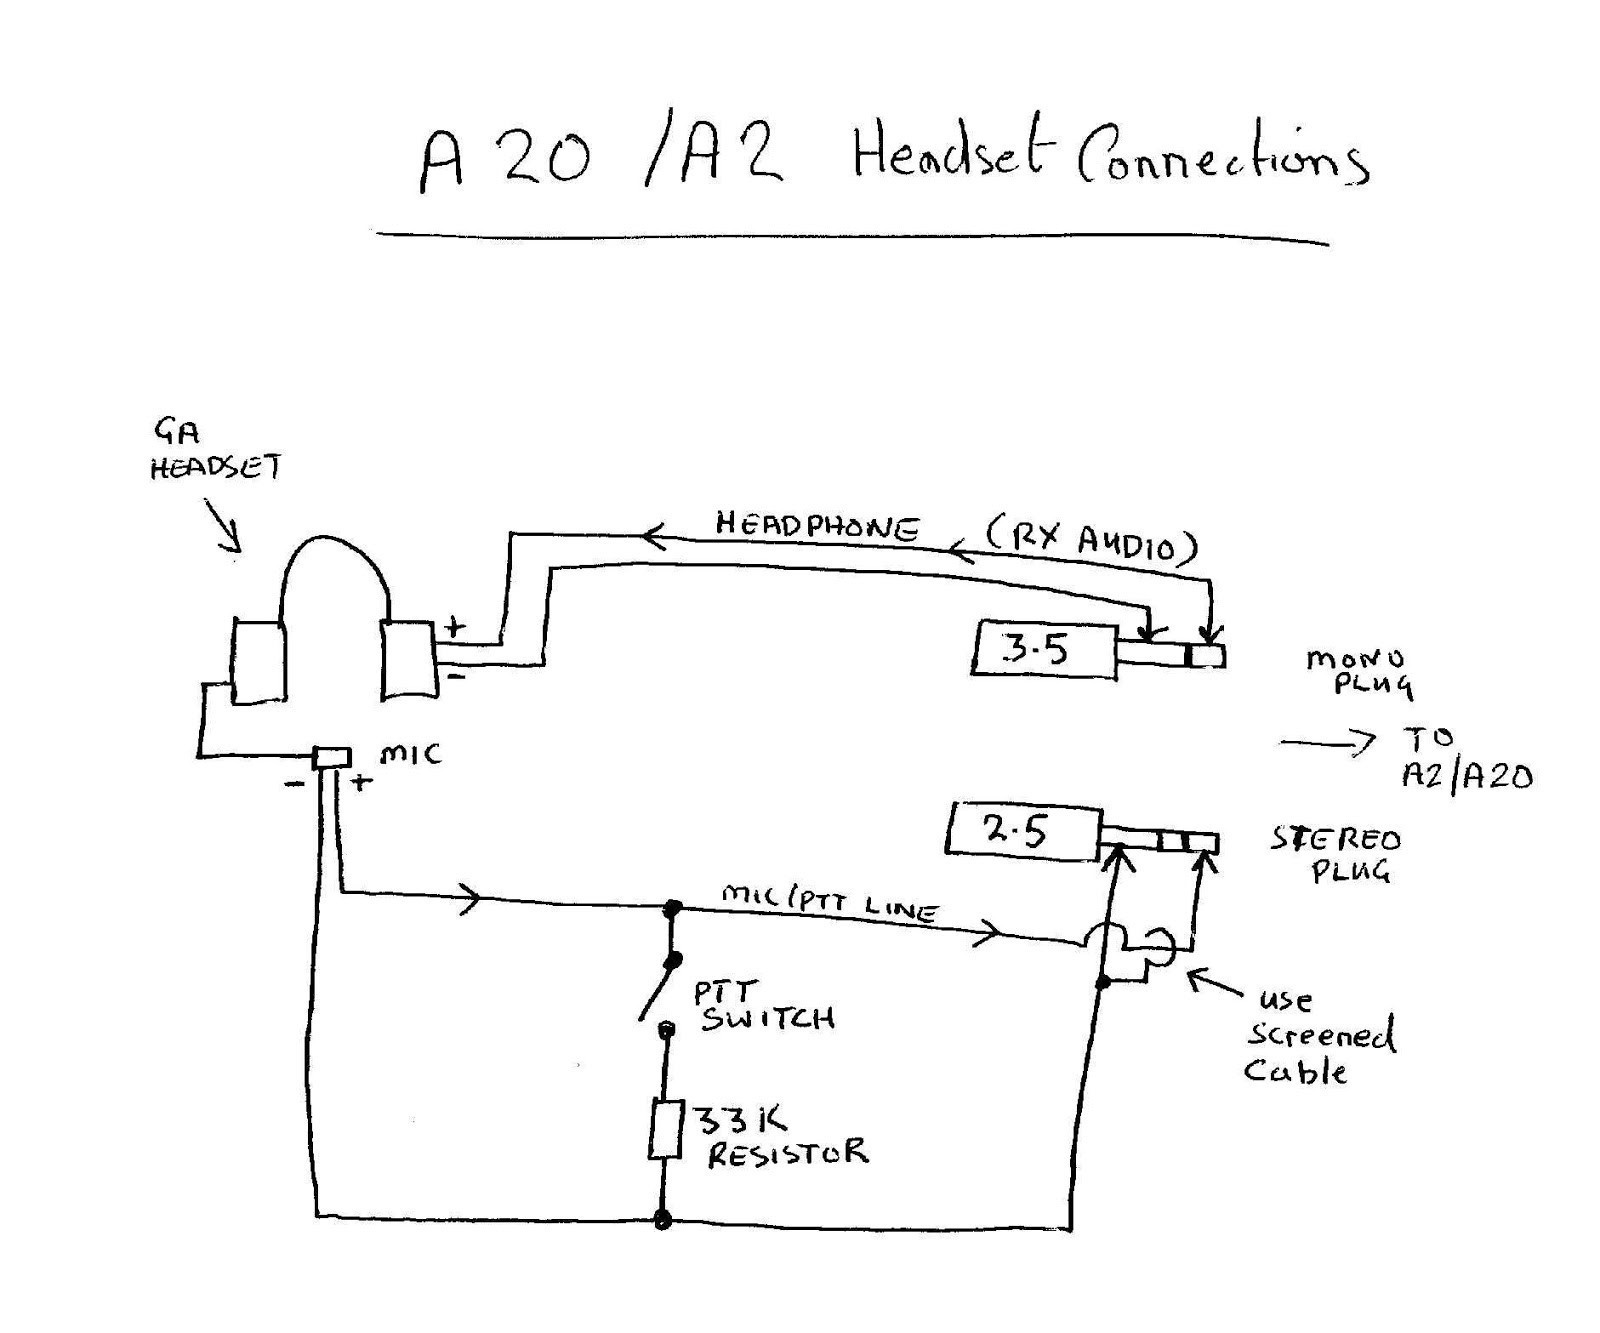 29f3 earbud with mic wiring diagram | wiring library  wiring library